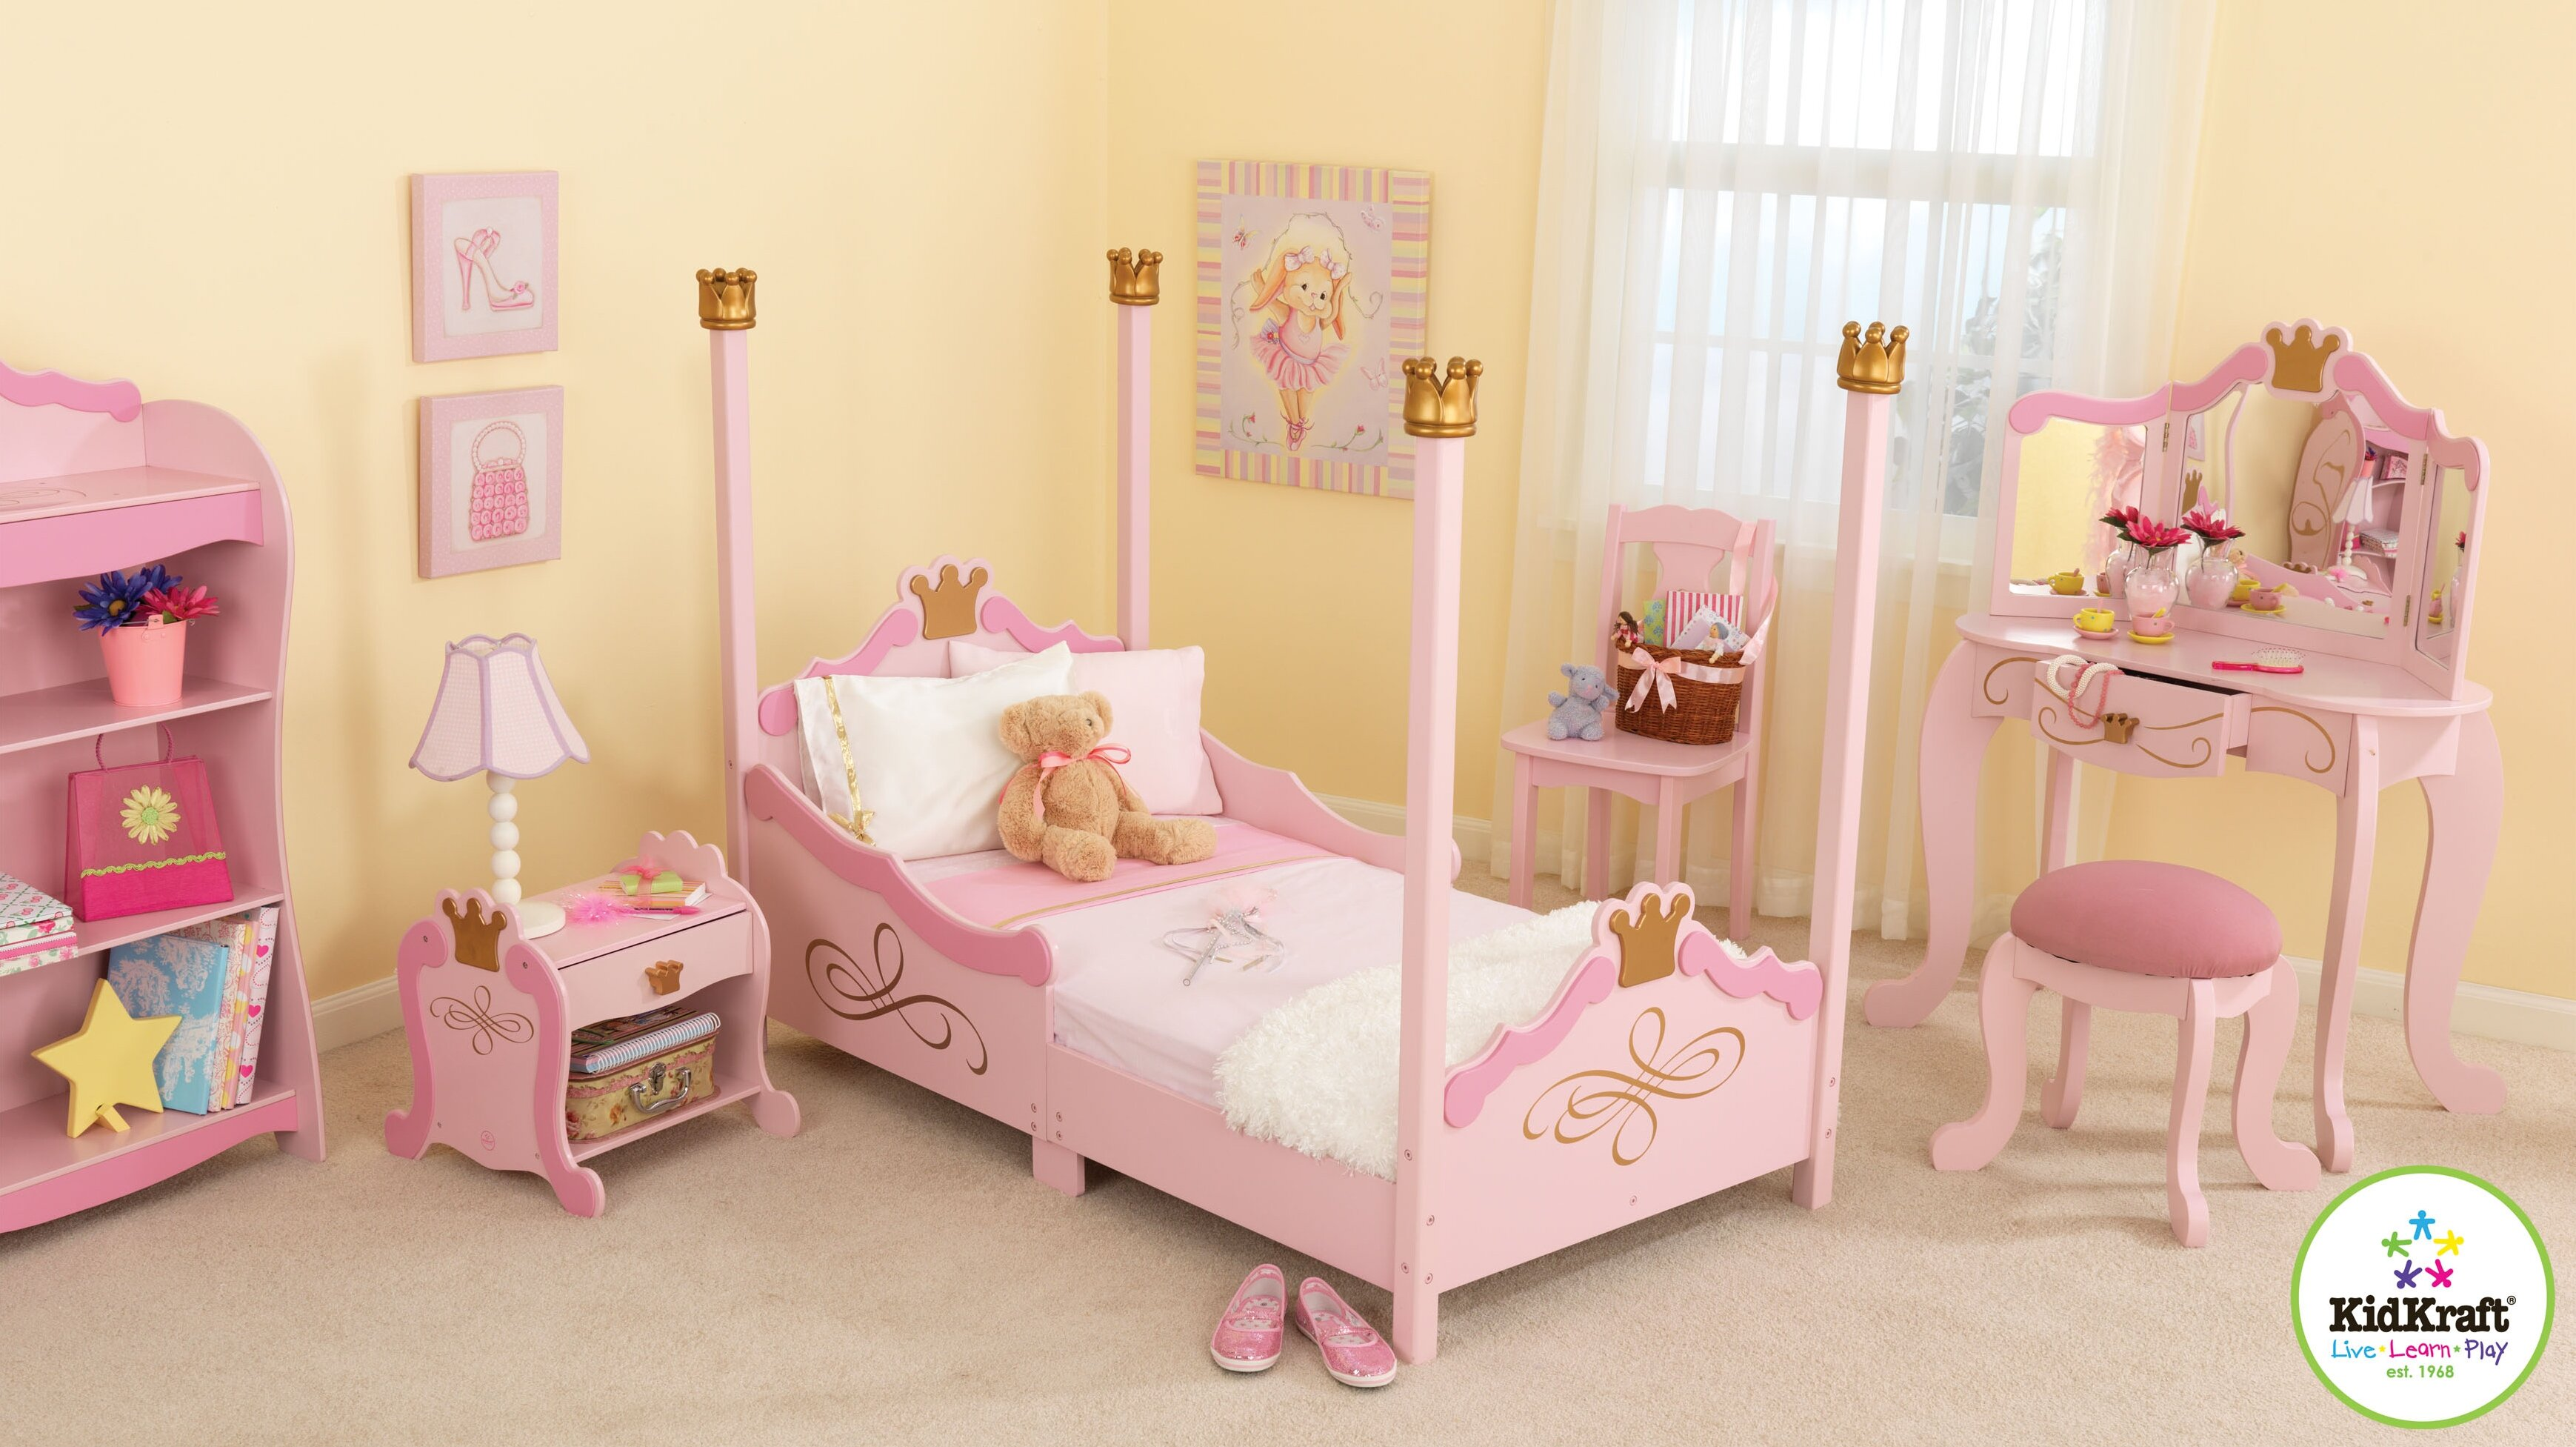 bedroom one designs design for decorating home beds entrancing small shared budget your big sisters organizing s childrens on arrangements cool and with picture own colors little of sharing paint ideas room teenage sister sets toddler two a girl girls baby furniture